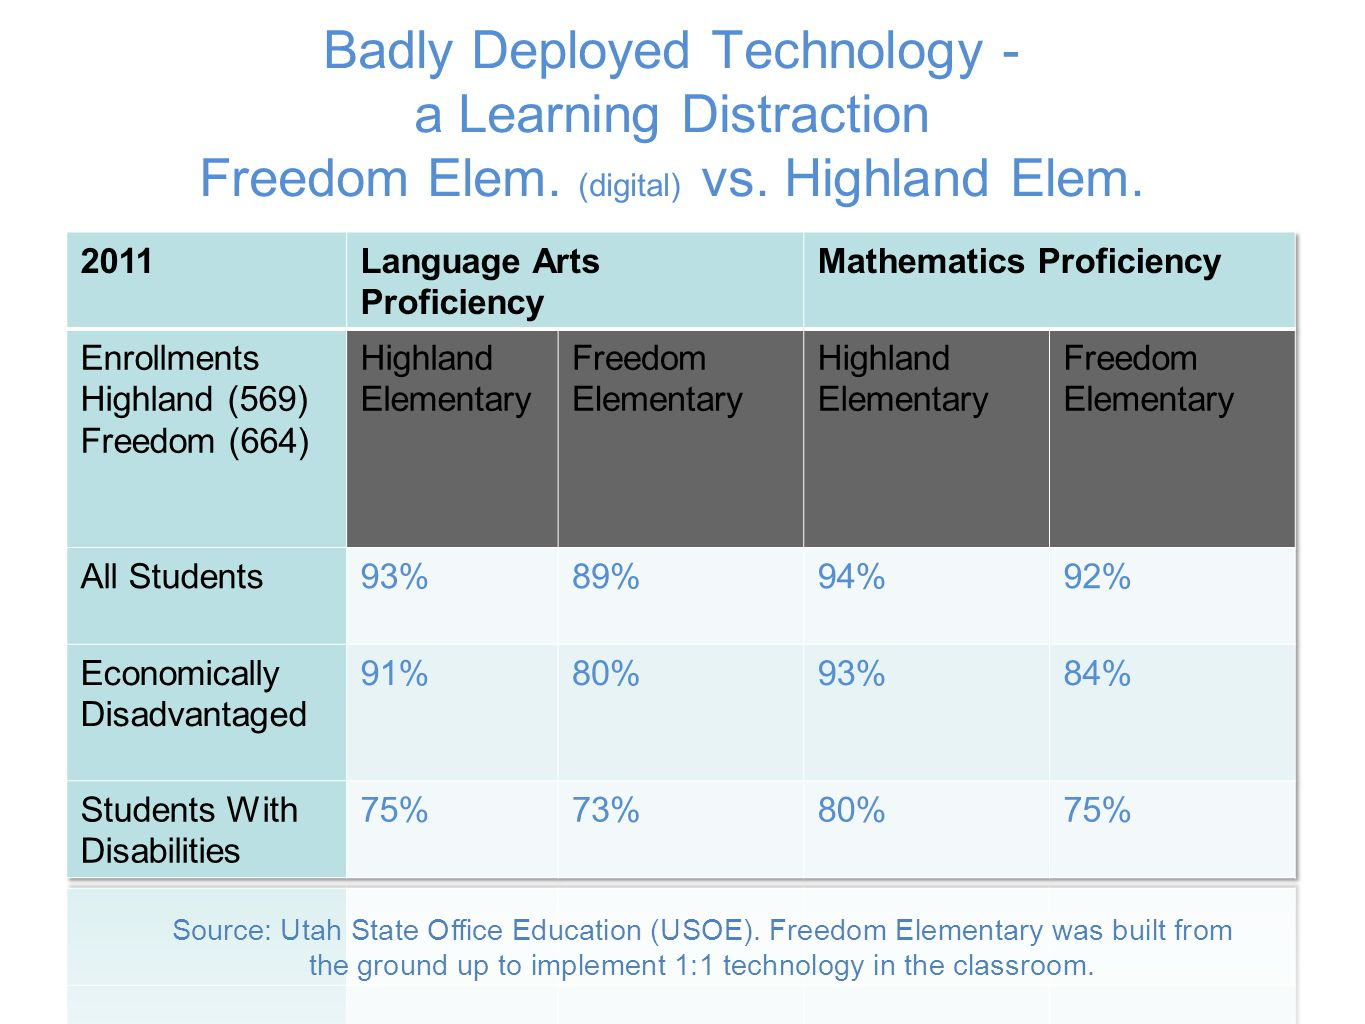 Badly Deployed Technology - a Learning Distraction Freedom Elem.